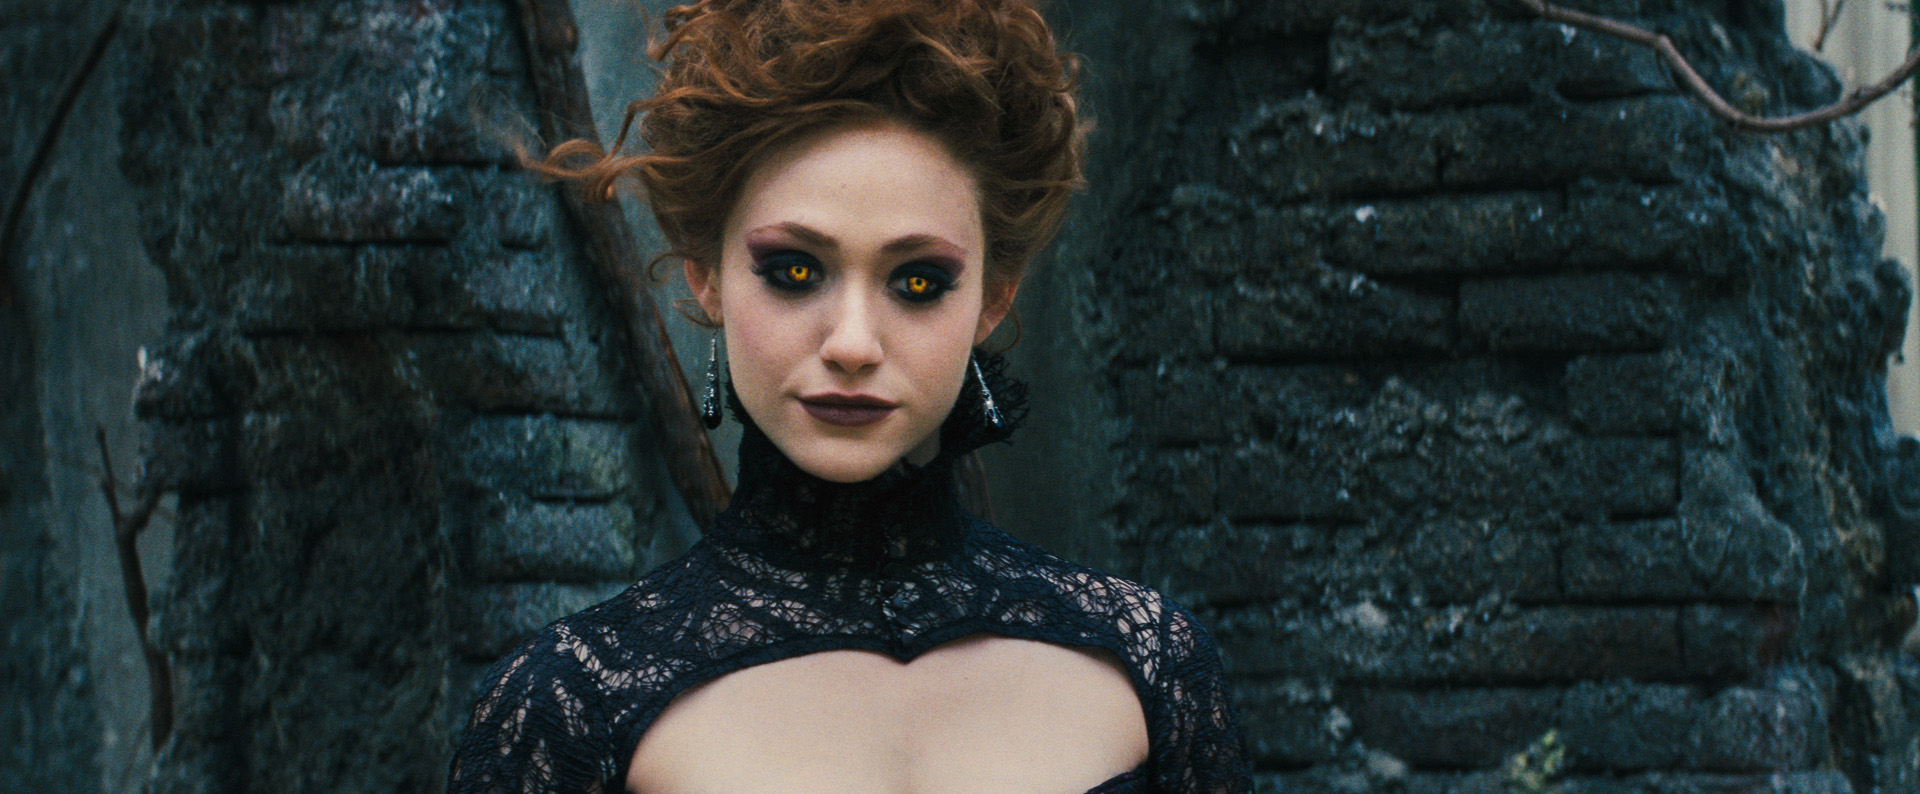 Emmy-rossum-as-dark-castor-ridley-duchannes-in-beautiful-creatures.jpg